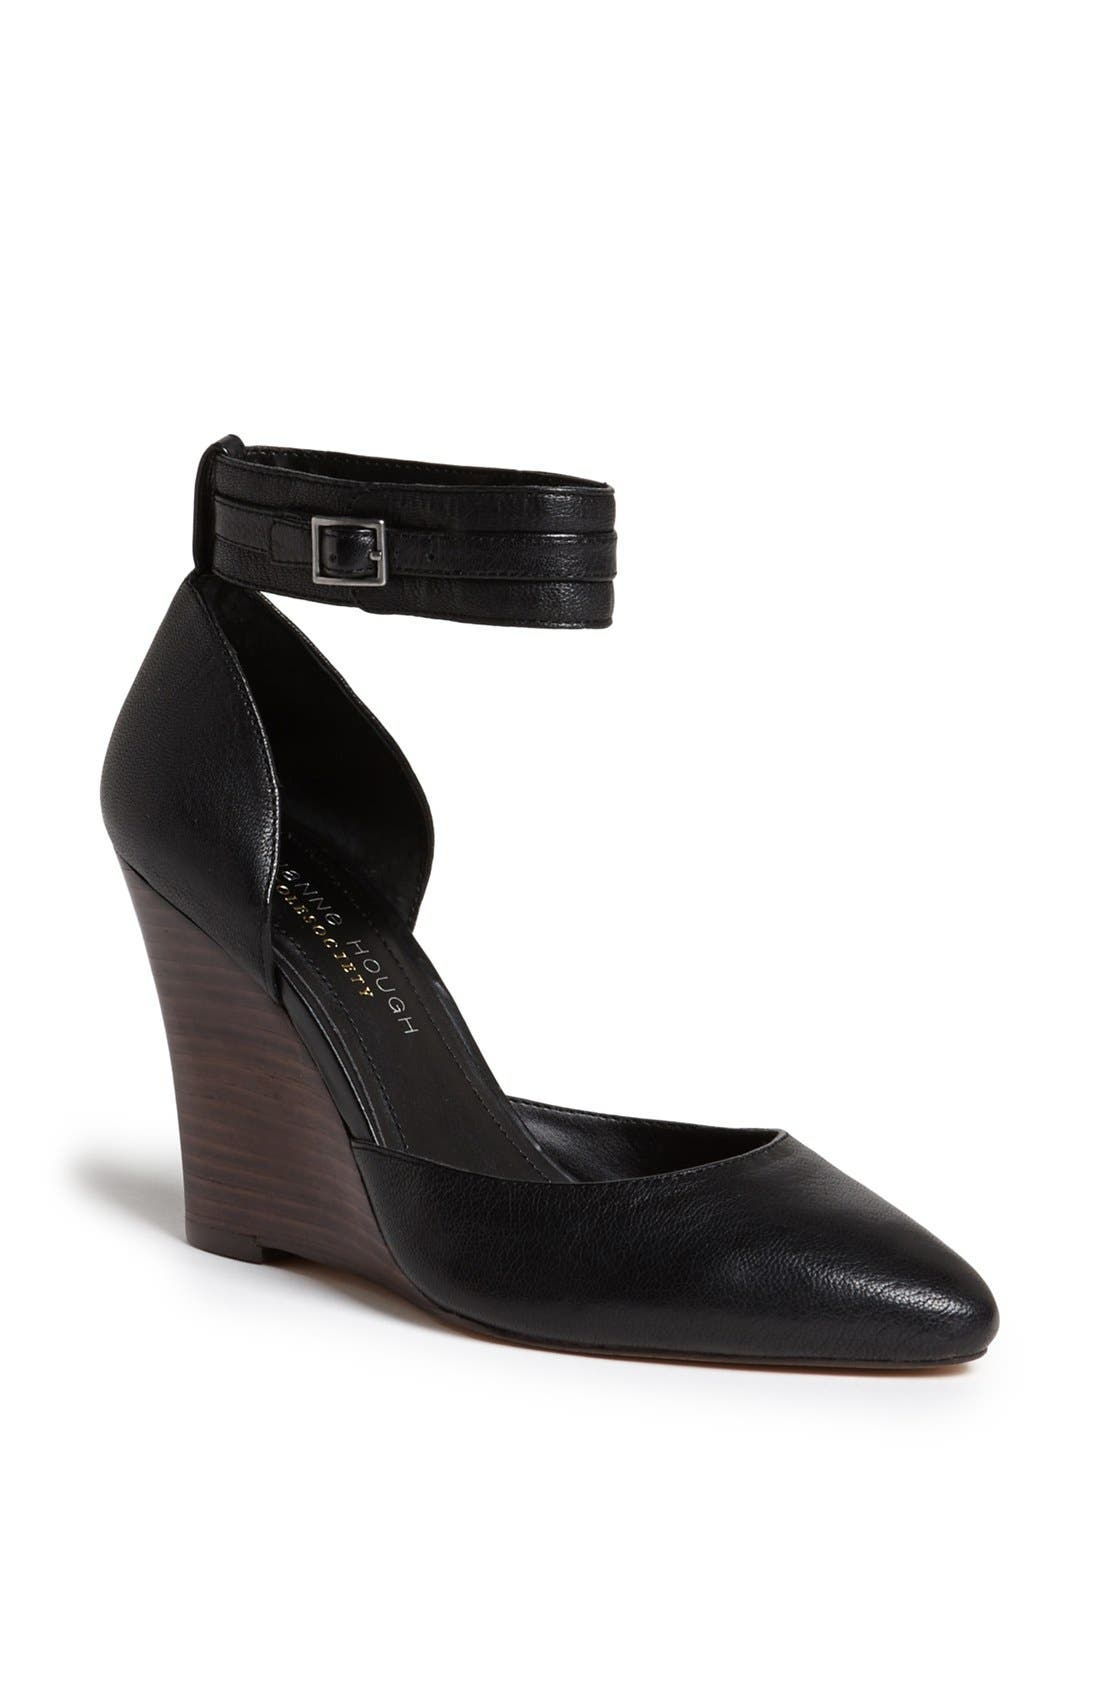 Main Image - Sole Society by Julianne Hough 'Caity' Ankle Strap Pump